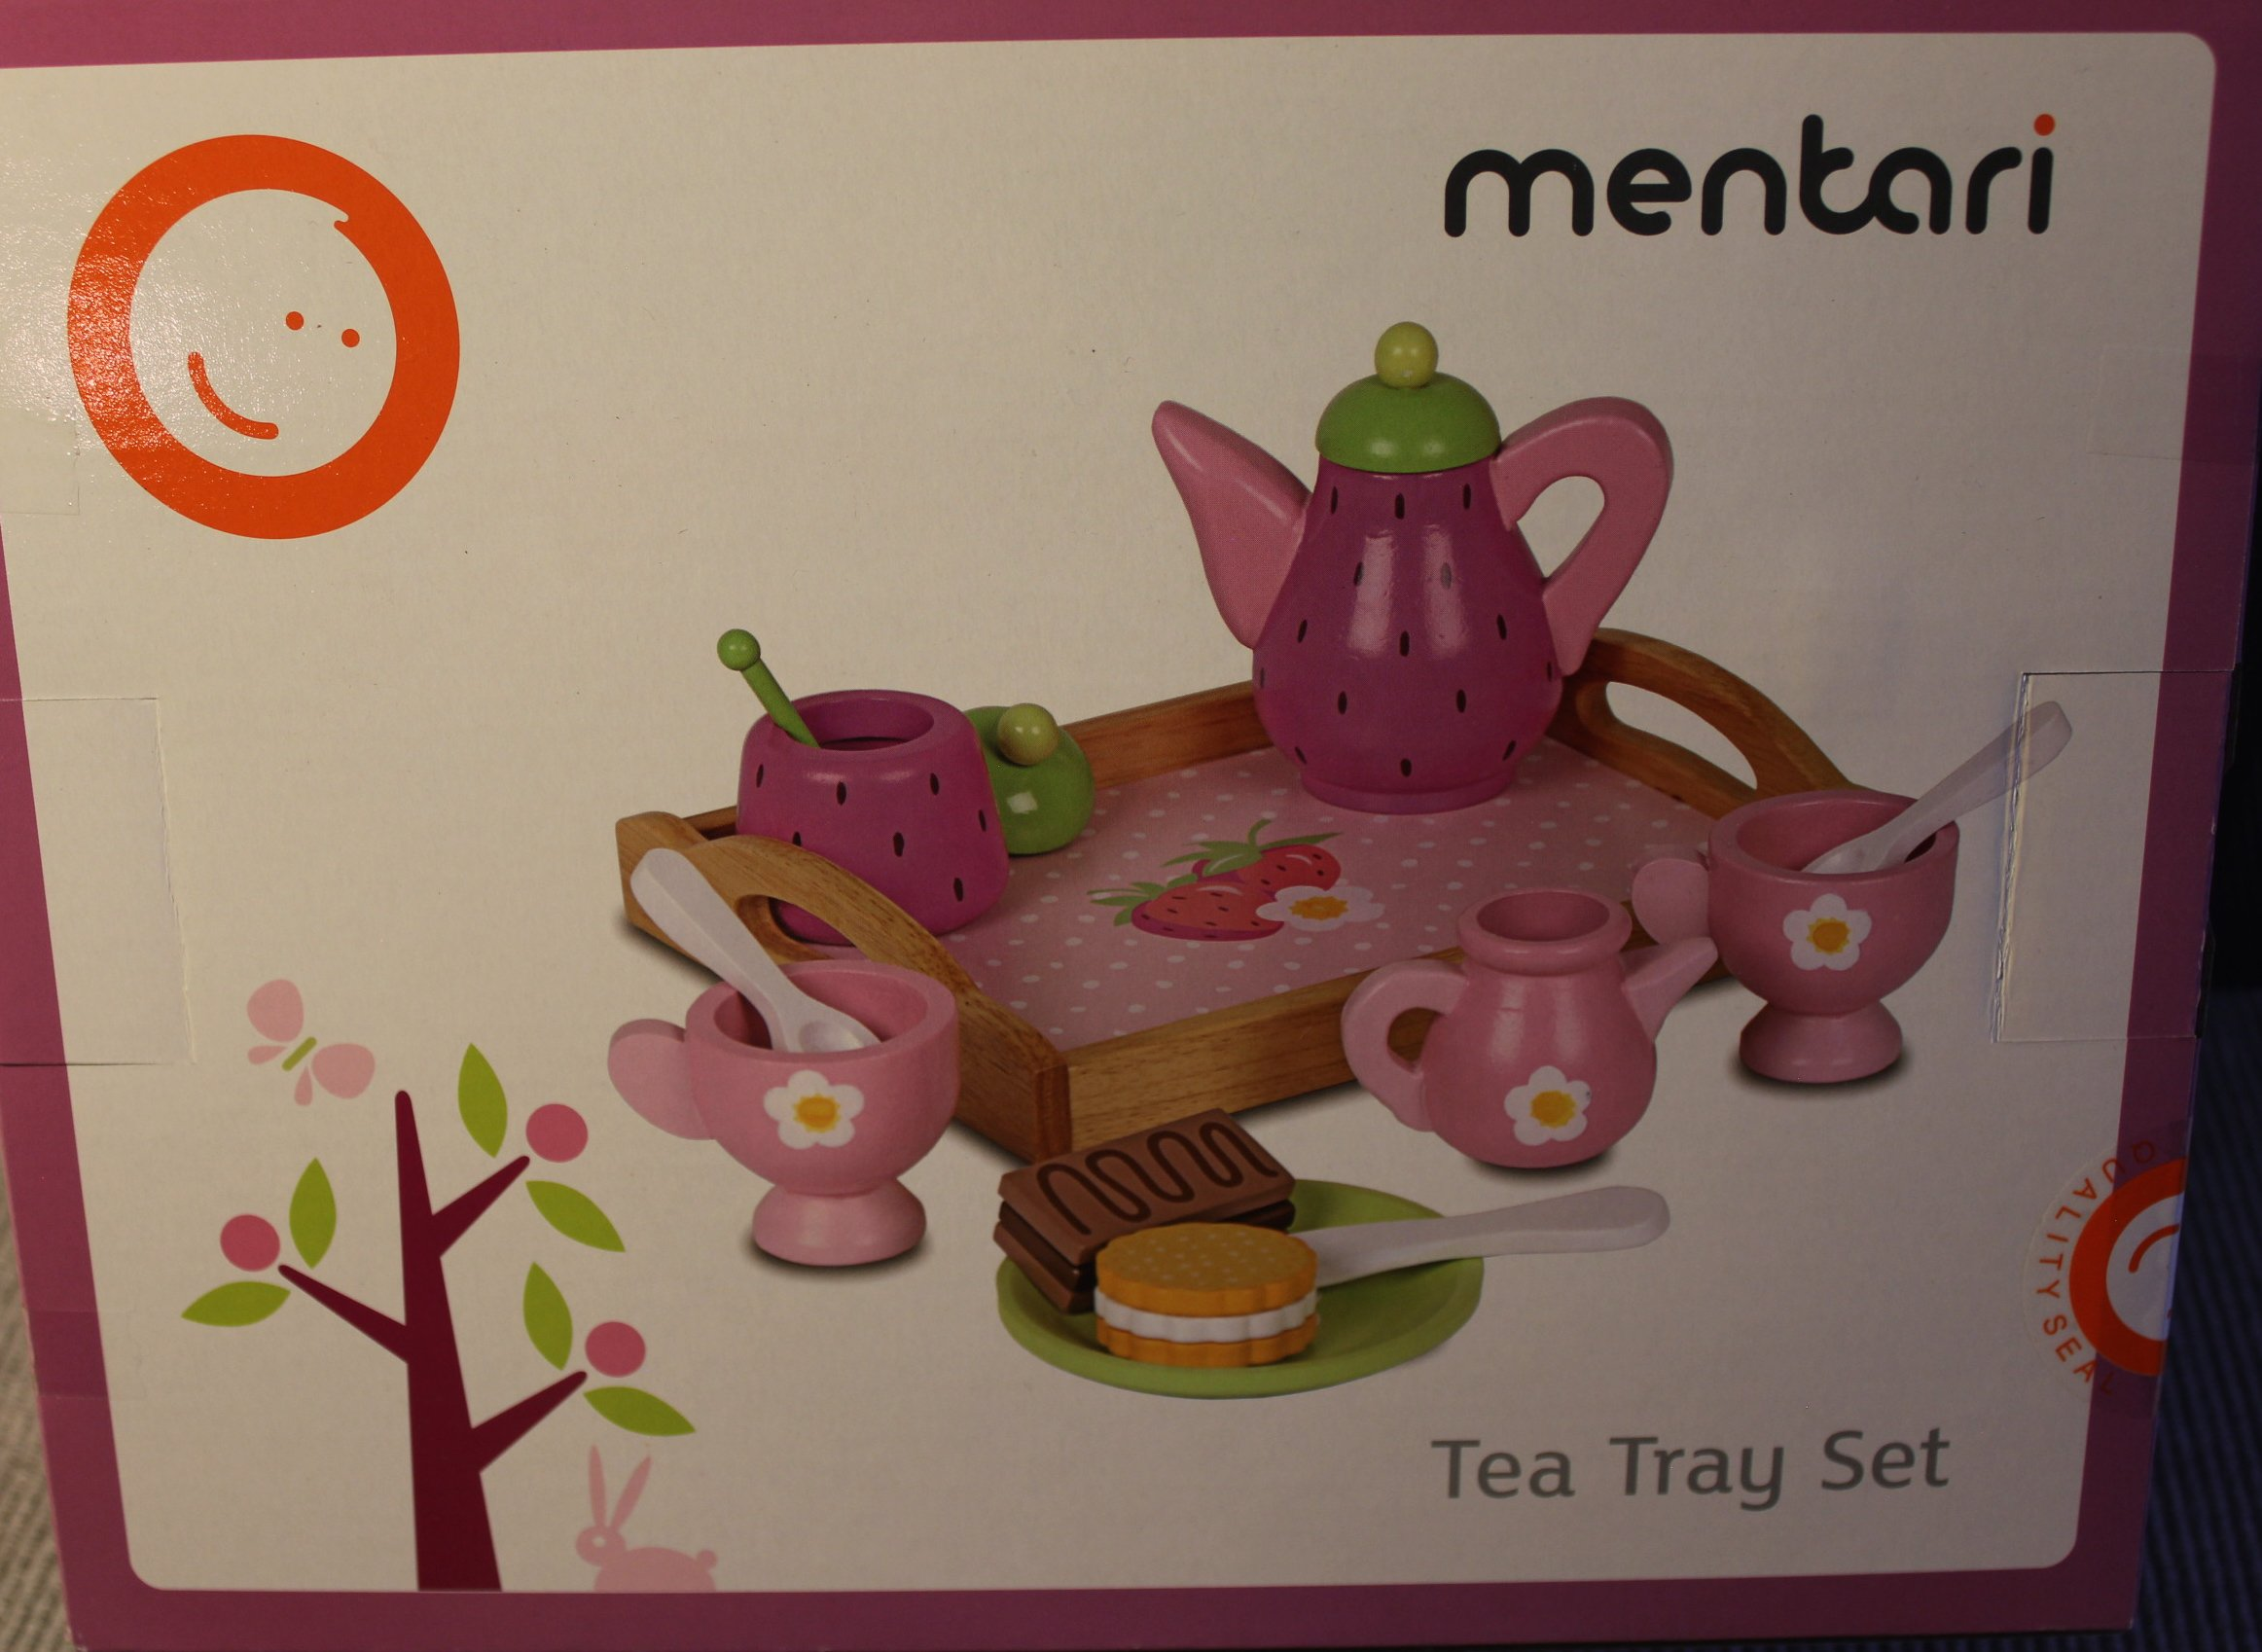 SNR merchandise & informatics MT-3524 LLC Mentari Wooden Tea Tray Playset ( Made by Qualities Wood )